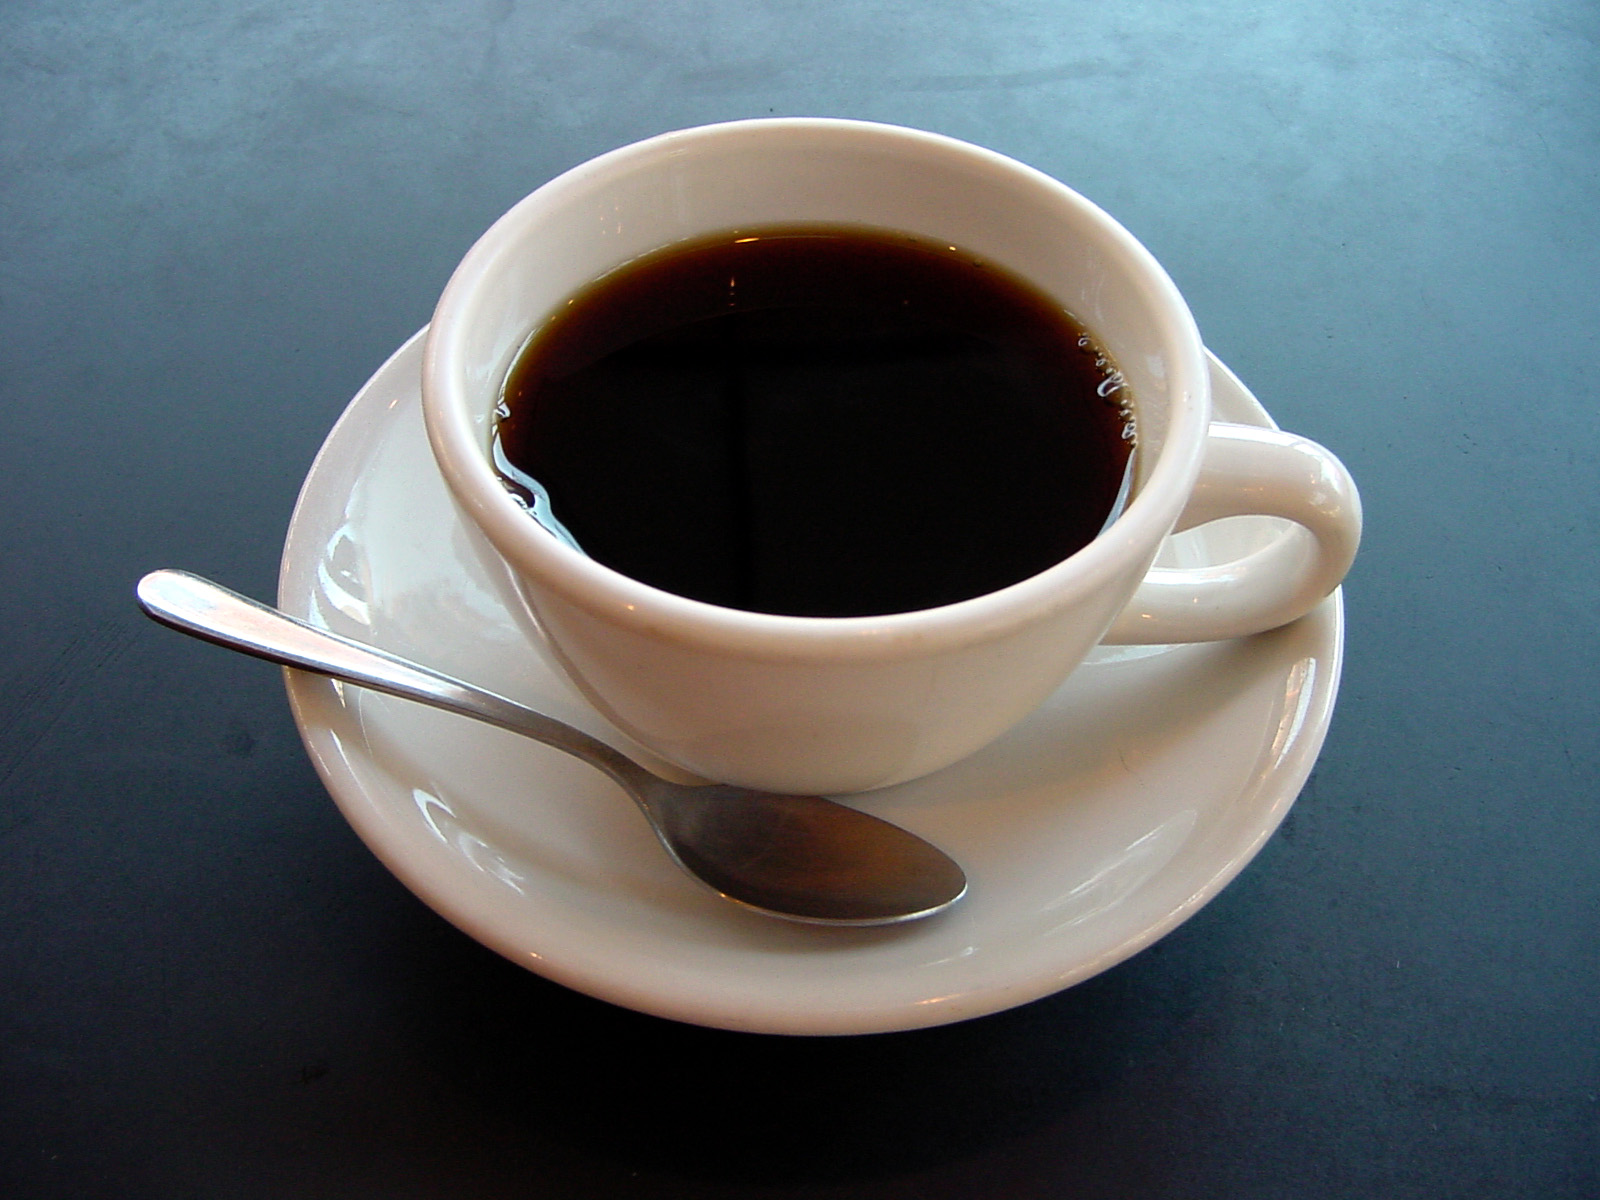 List of coffee shops need emails and phone numbers for